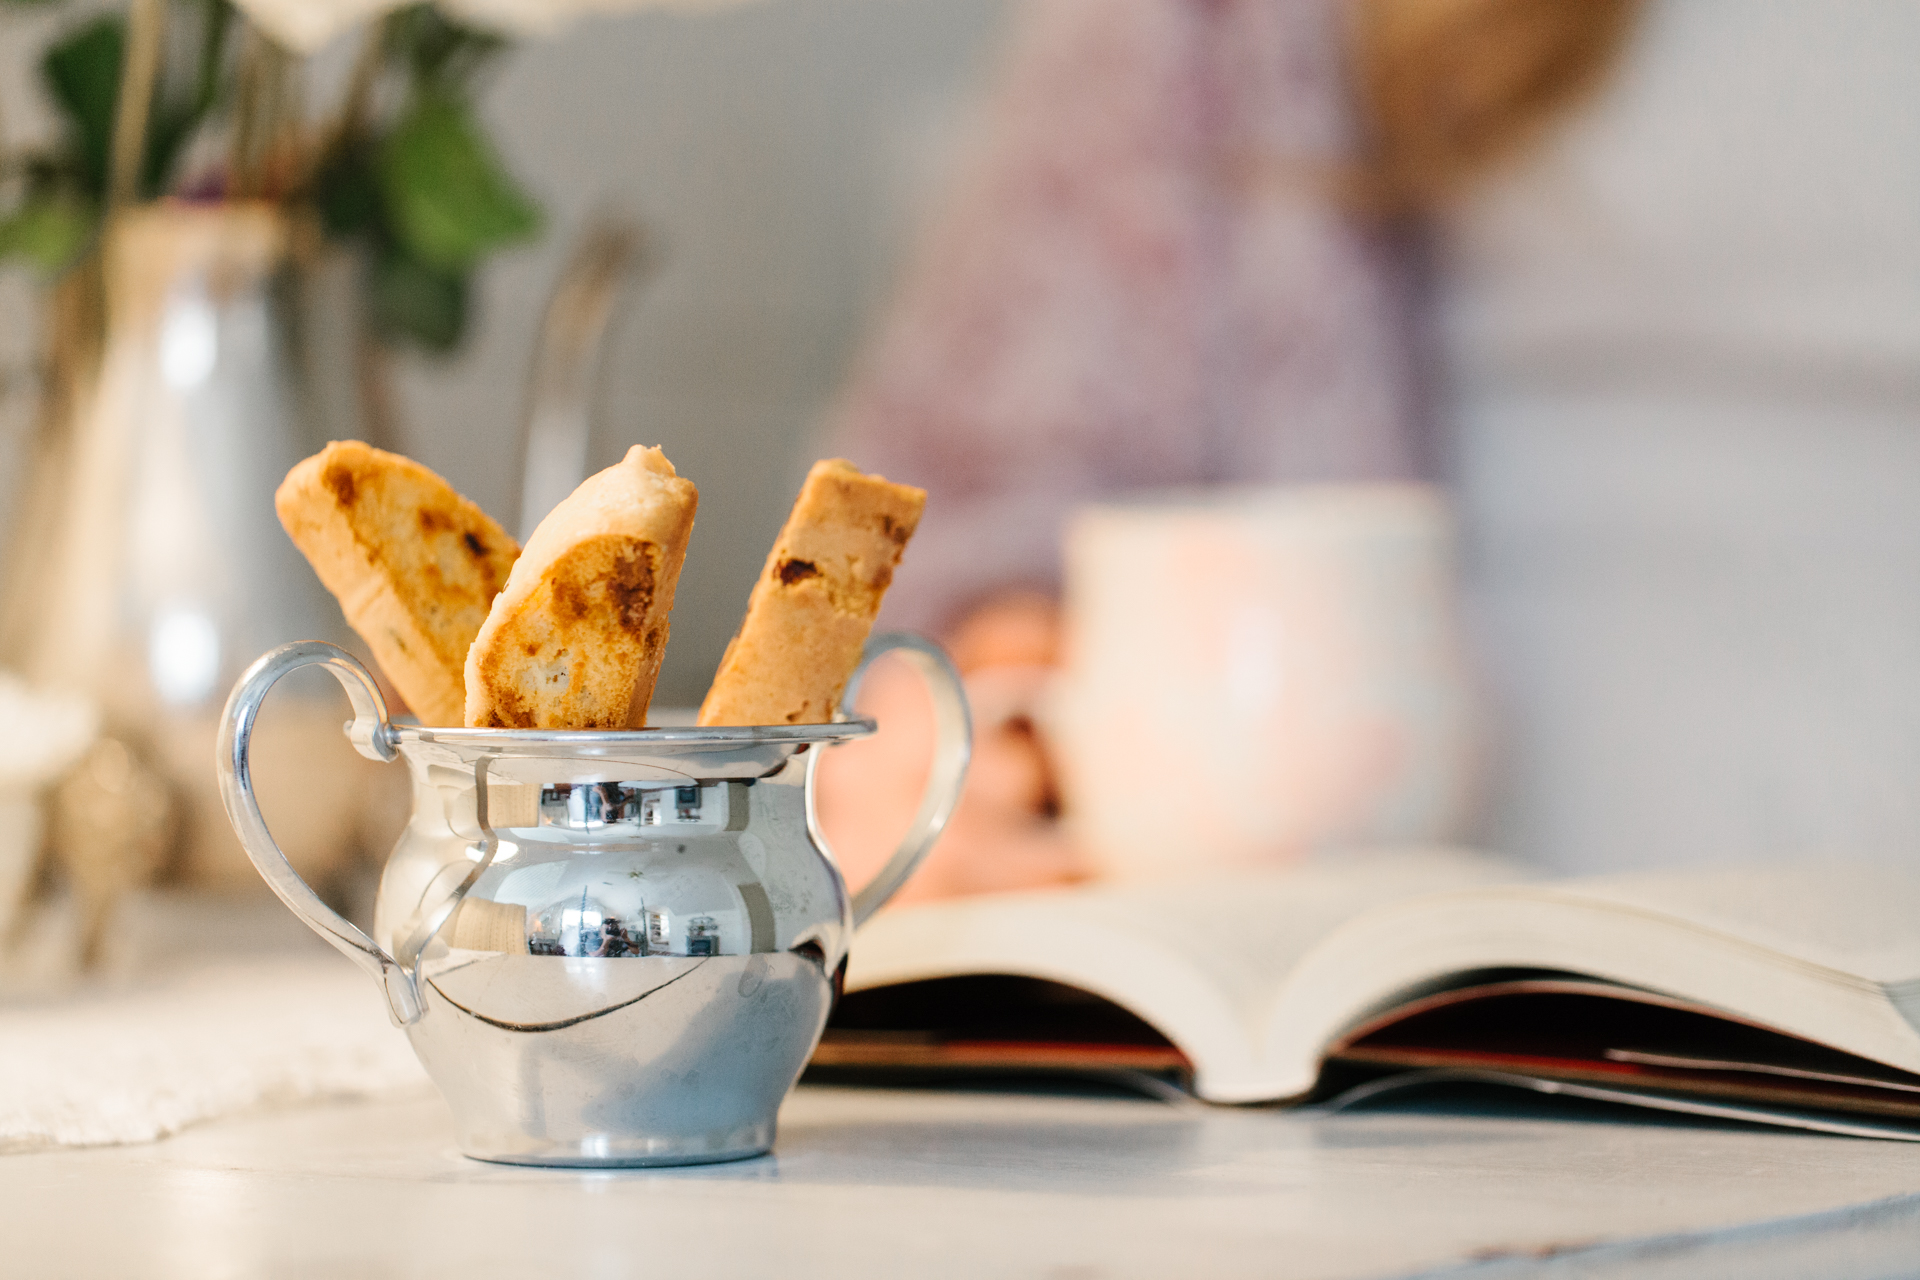 Homemade biscotti, every morning. Just another reason to take up coffee-drinking.